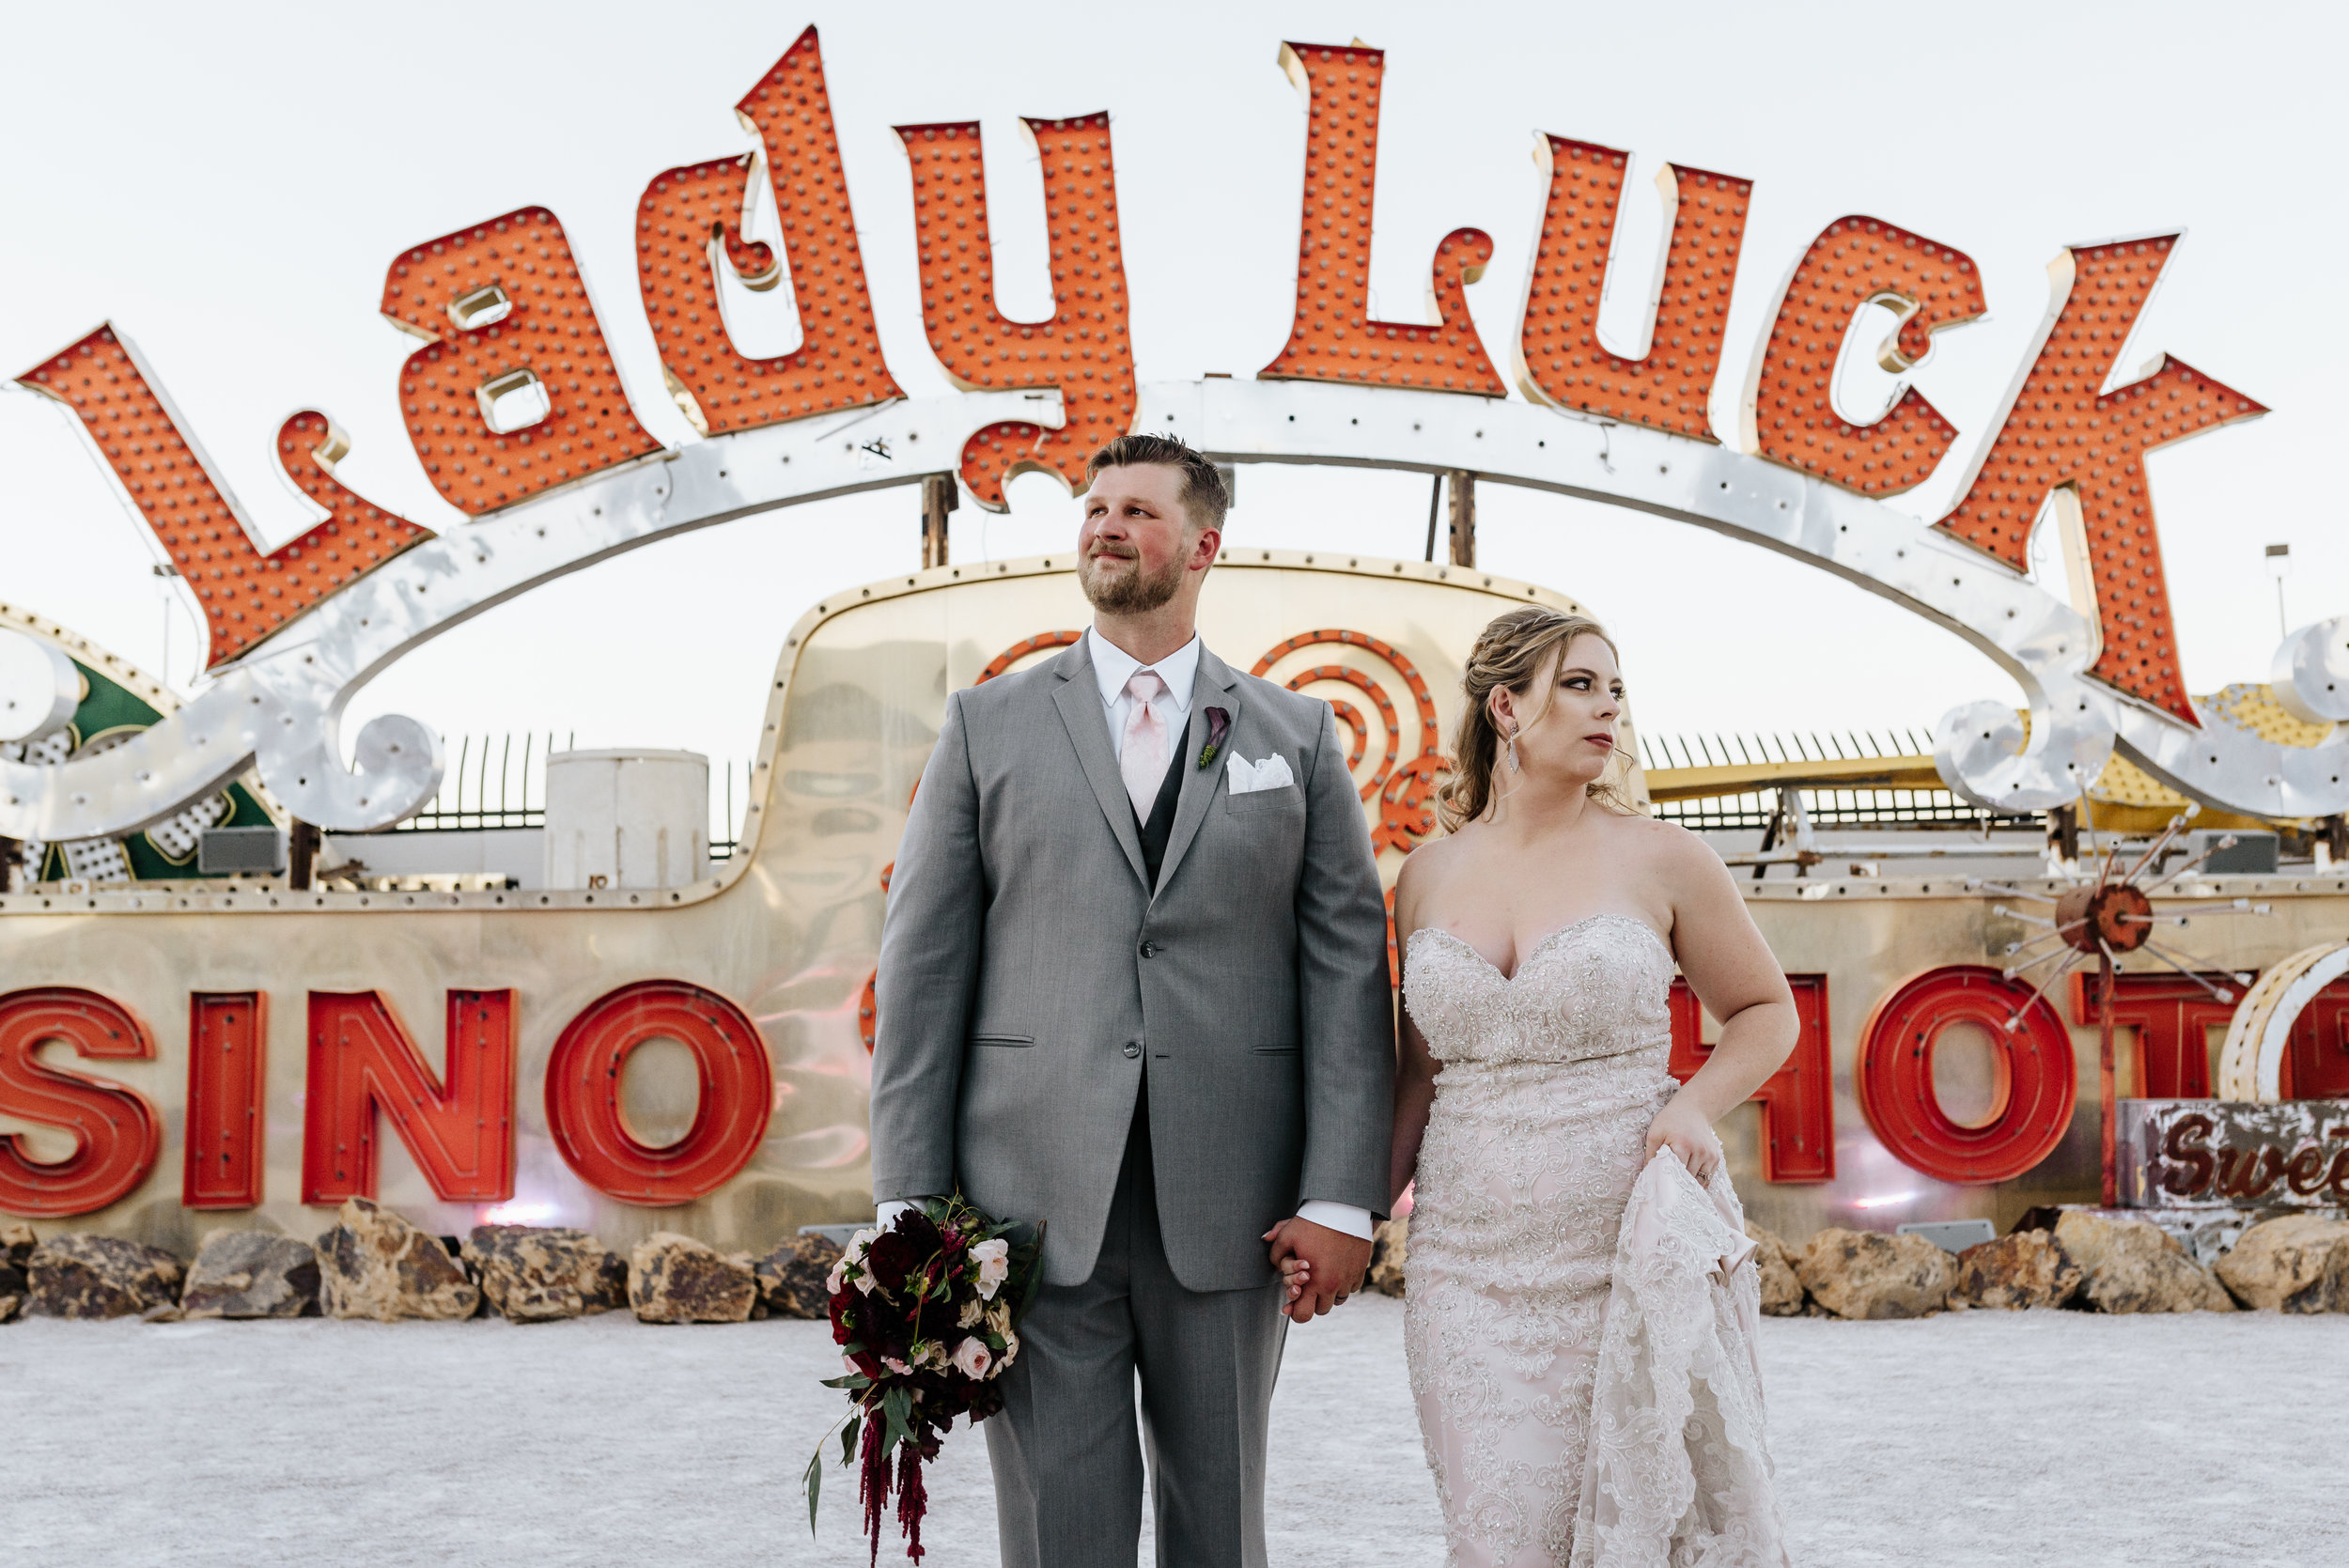 Neon-Museum-Wedding-Las-Vegas-Nevada-Golden-Nugget-Photography-by-V-Ally-and-Dan-3259.jpg